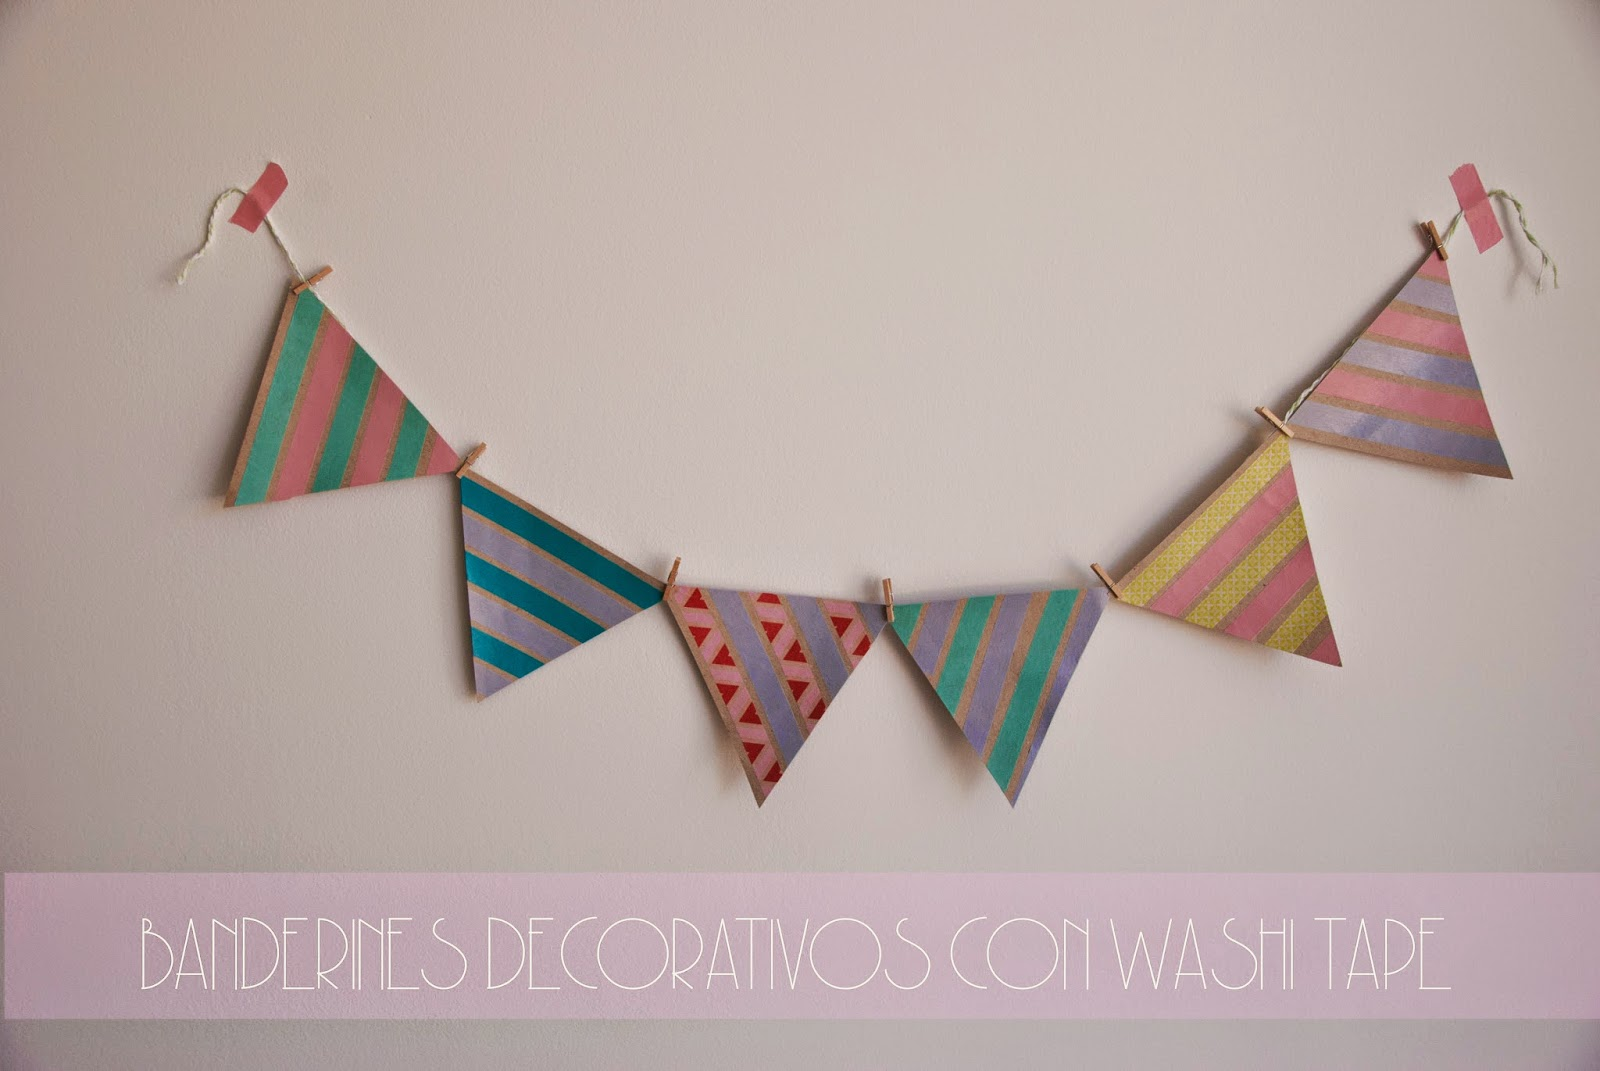 BANDERINES DECORATIVOS DE PAPEL KRAFT Y WASHI TAPE